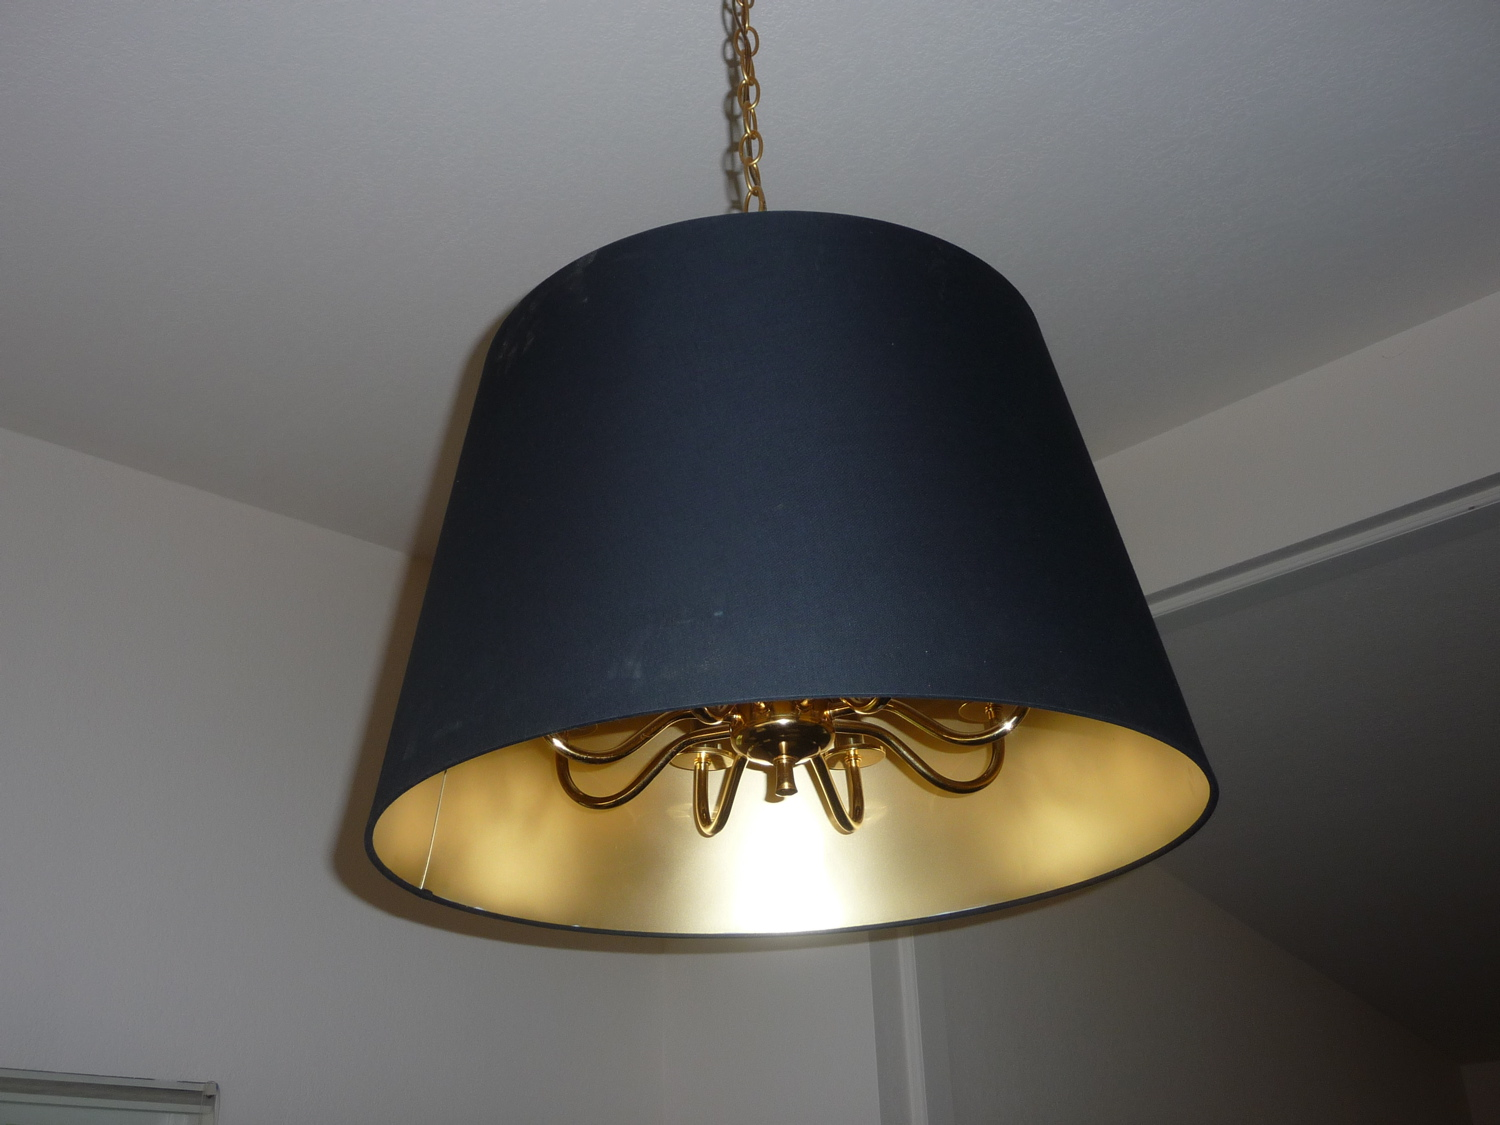 home jara lamp shade over hanging ceiling light